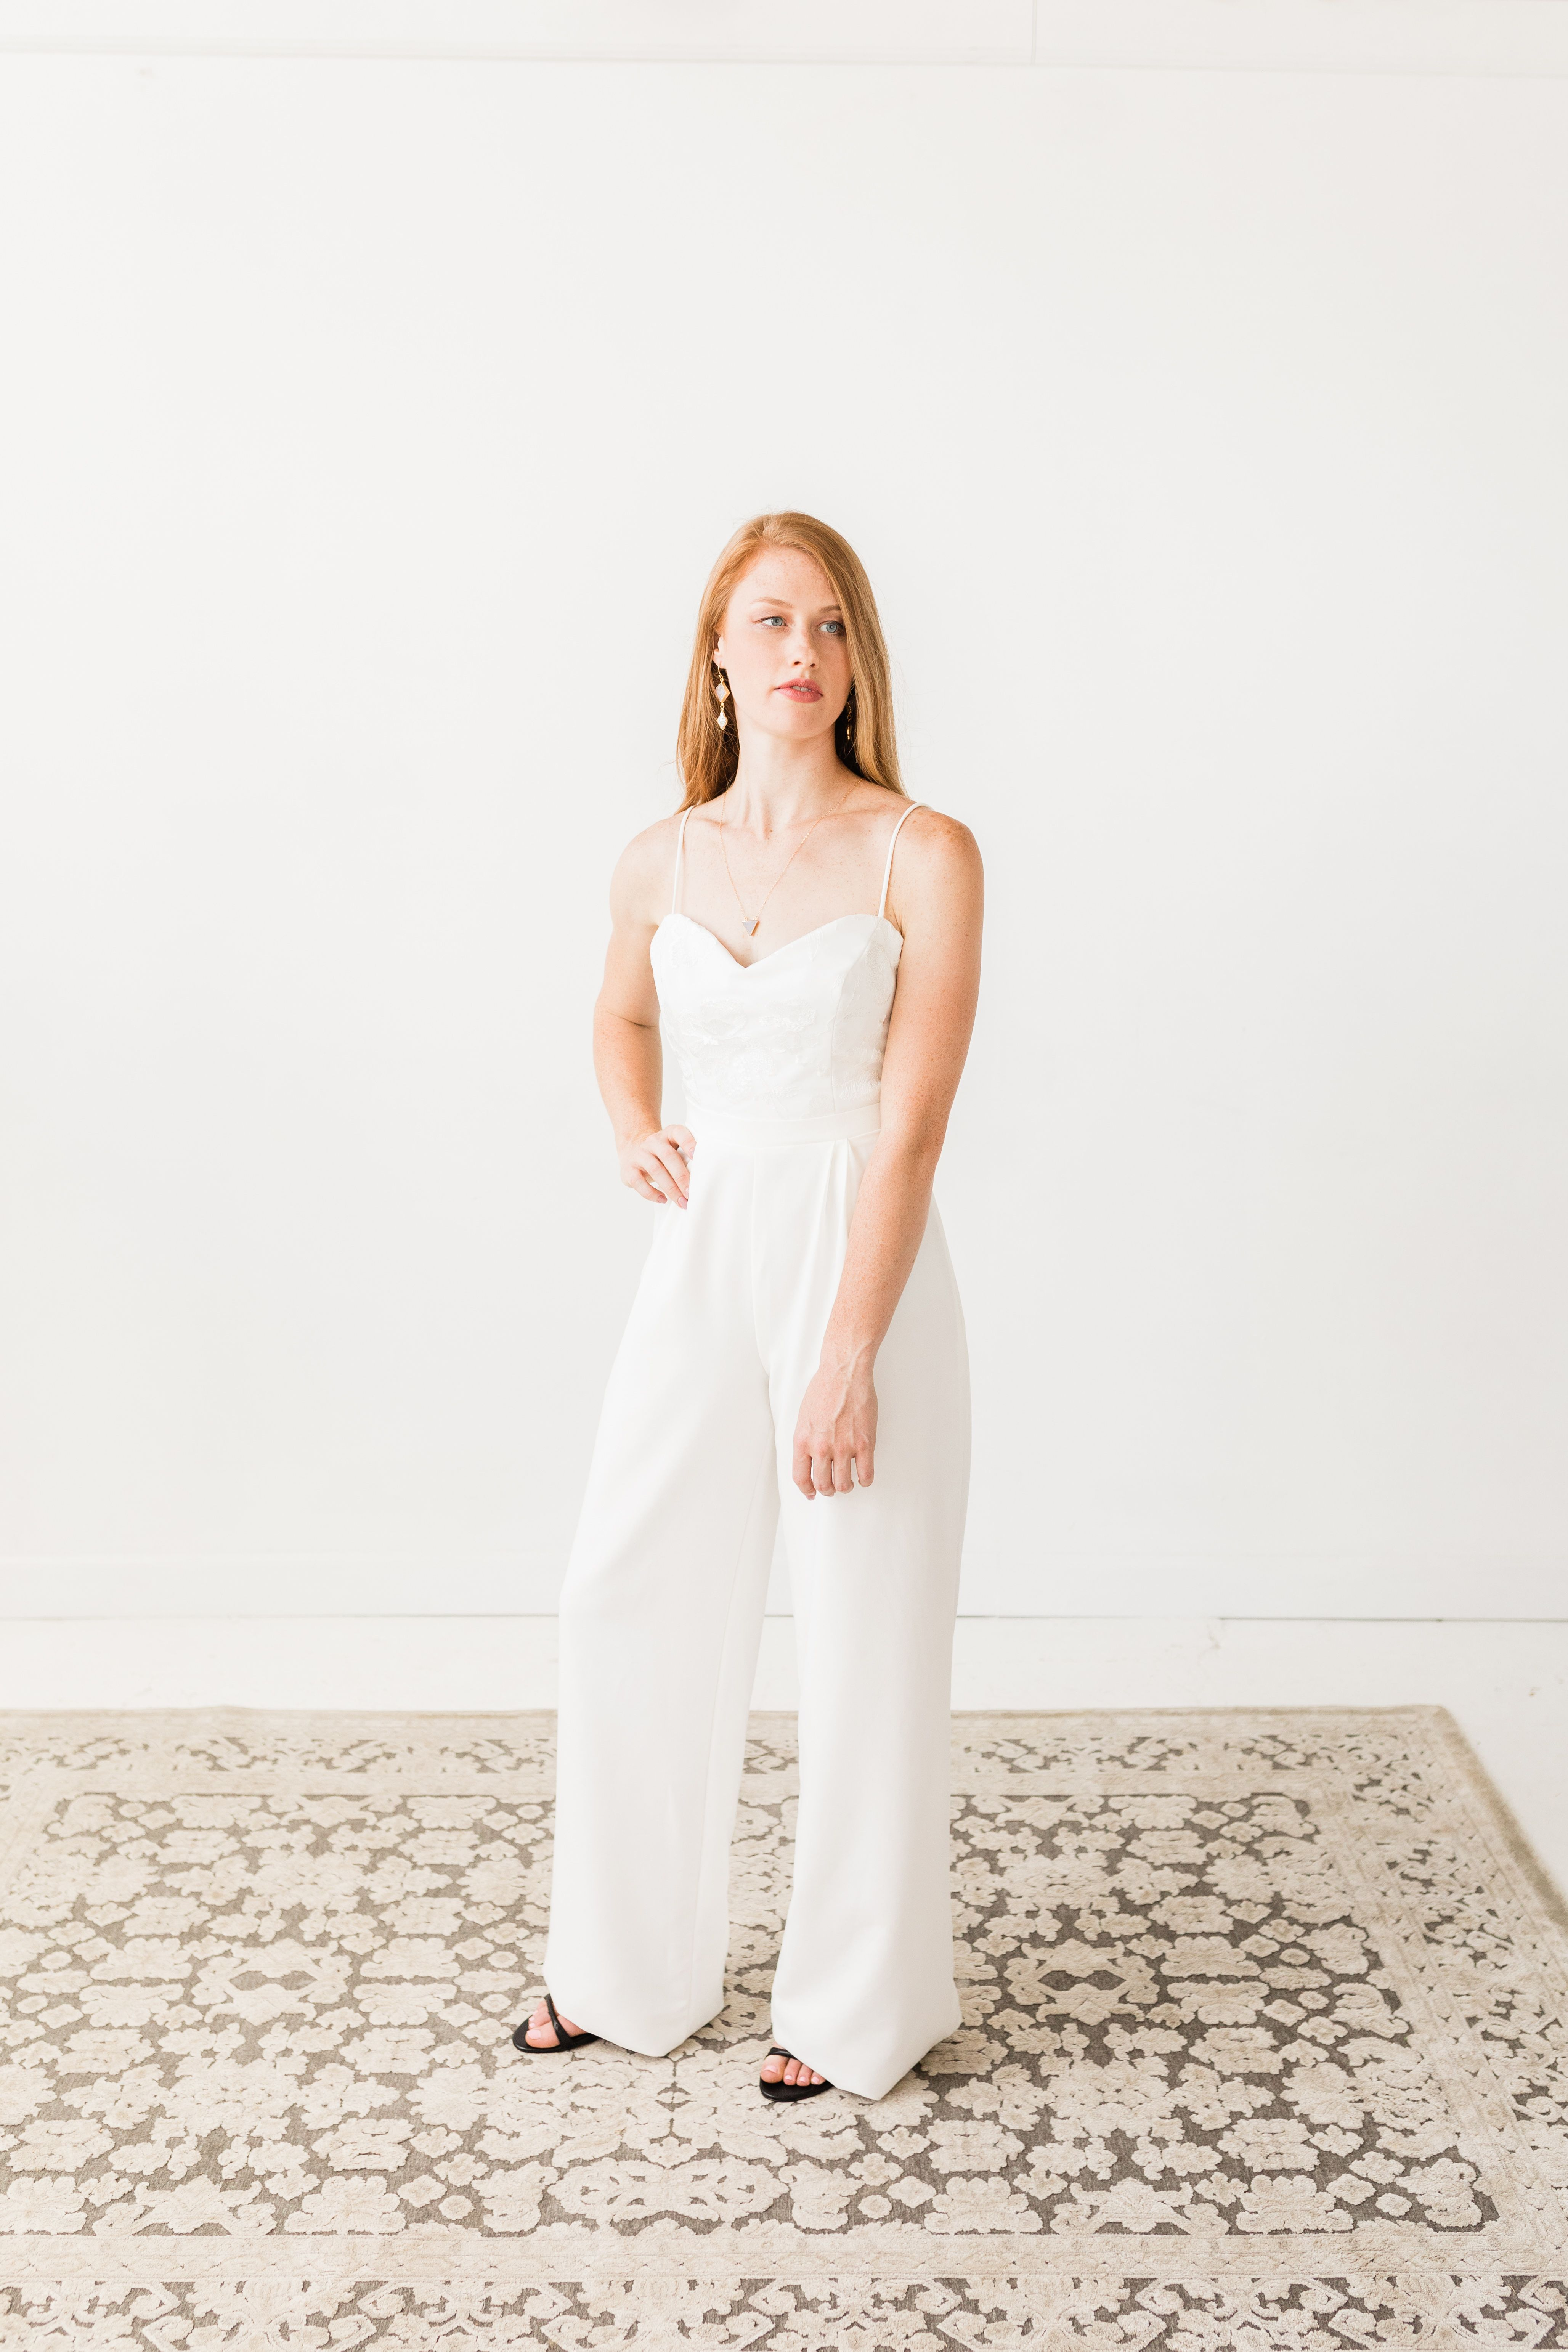 Hyacinth Bridal S 2019 Collection Look Book Creative Director Stylist And Planner Perry Rose Media Photograph Crepe Wedding Dress Romantic Dress Dresses